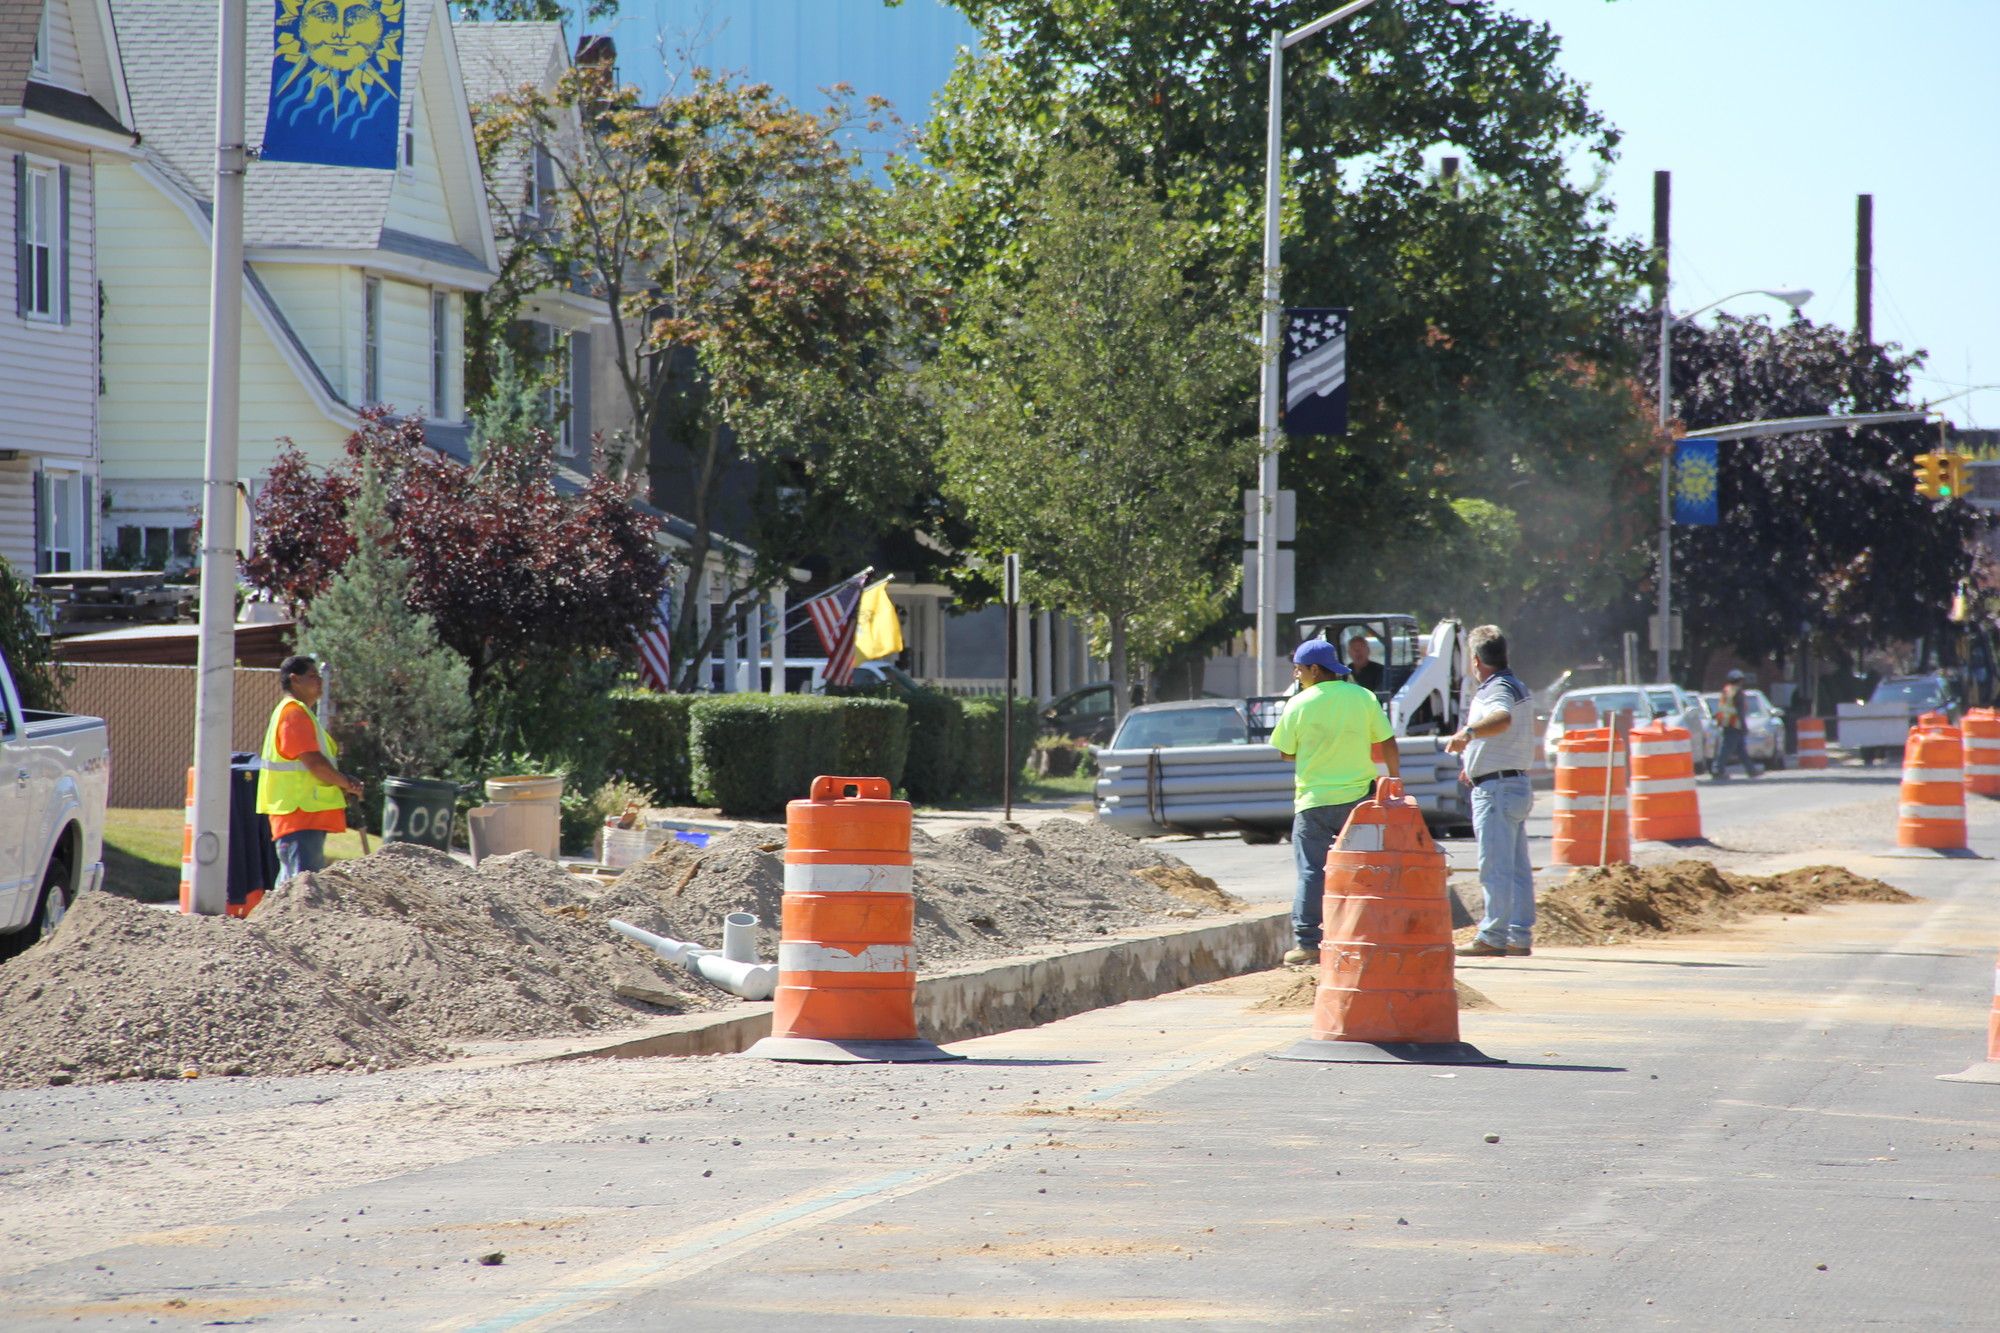 Workers have been tearing up Maple Avenue for months. Unmapped pipes and electrical lines have slowed the construction process.